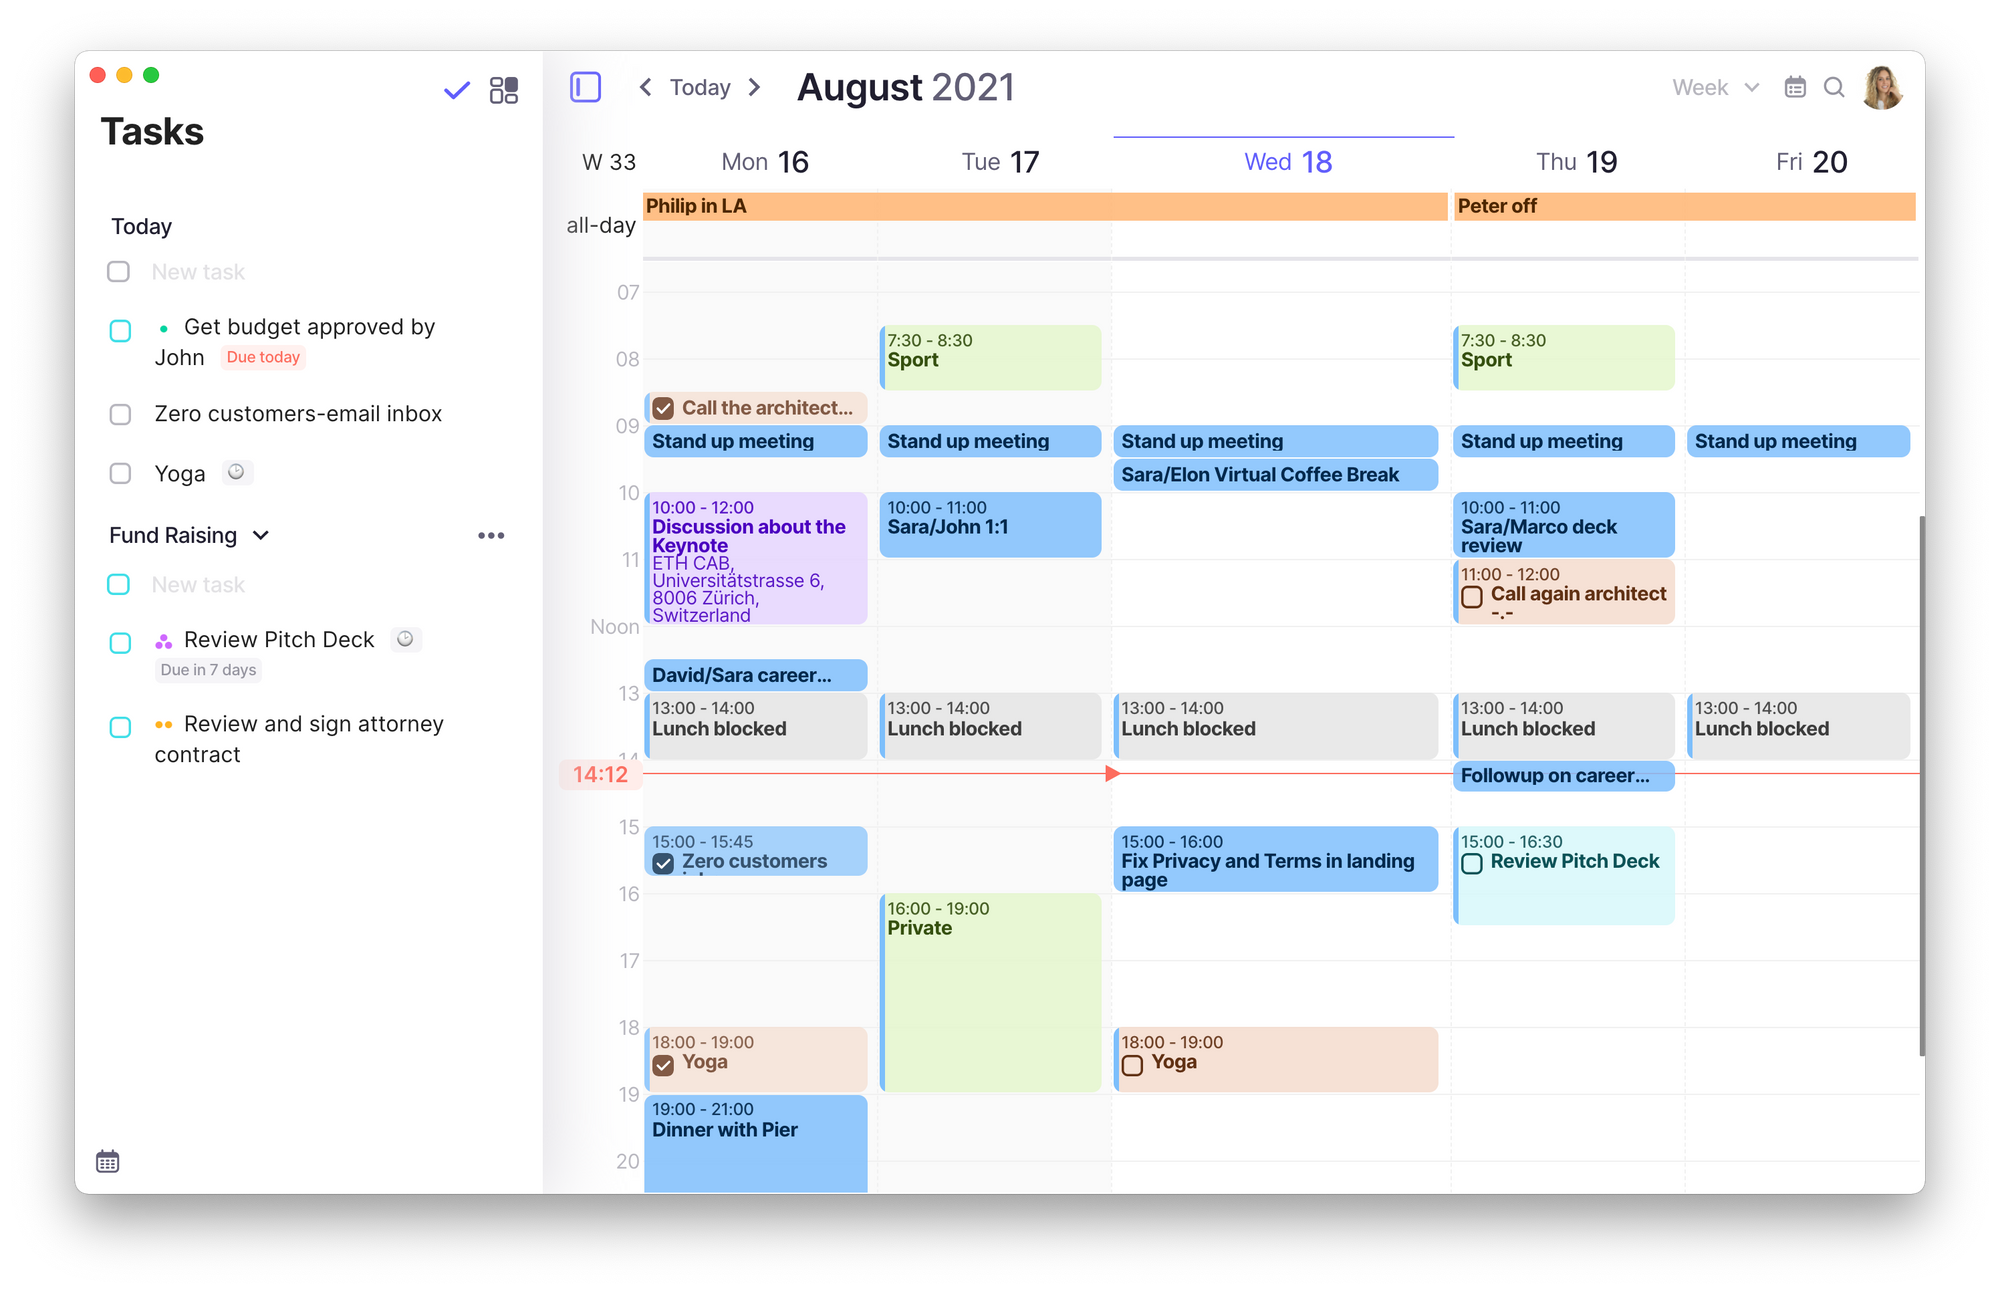 Screenshot of Morgen's interface displaying several tasks in the left sidebar and several events and meetings in the calendar view